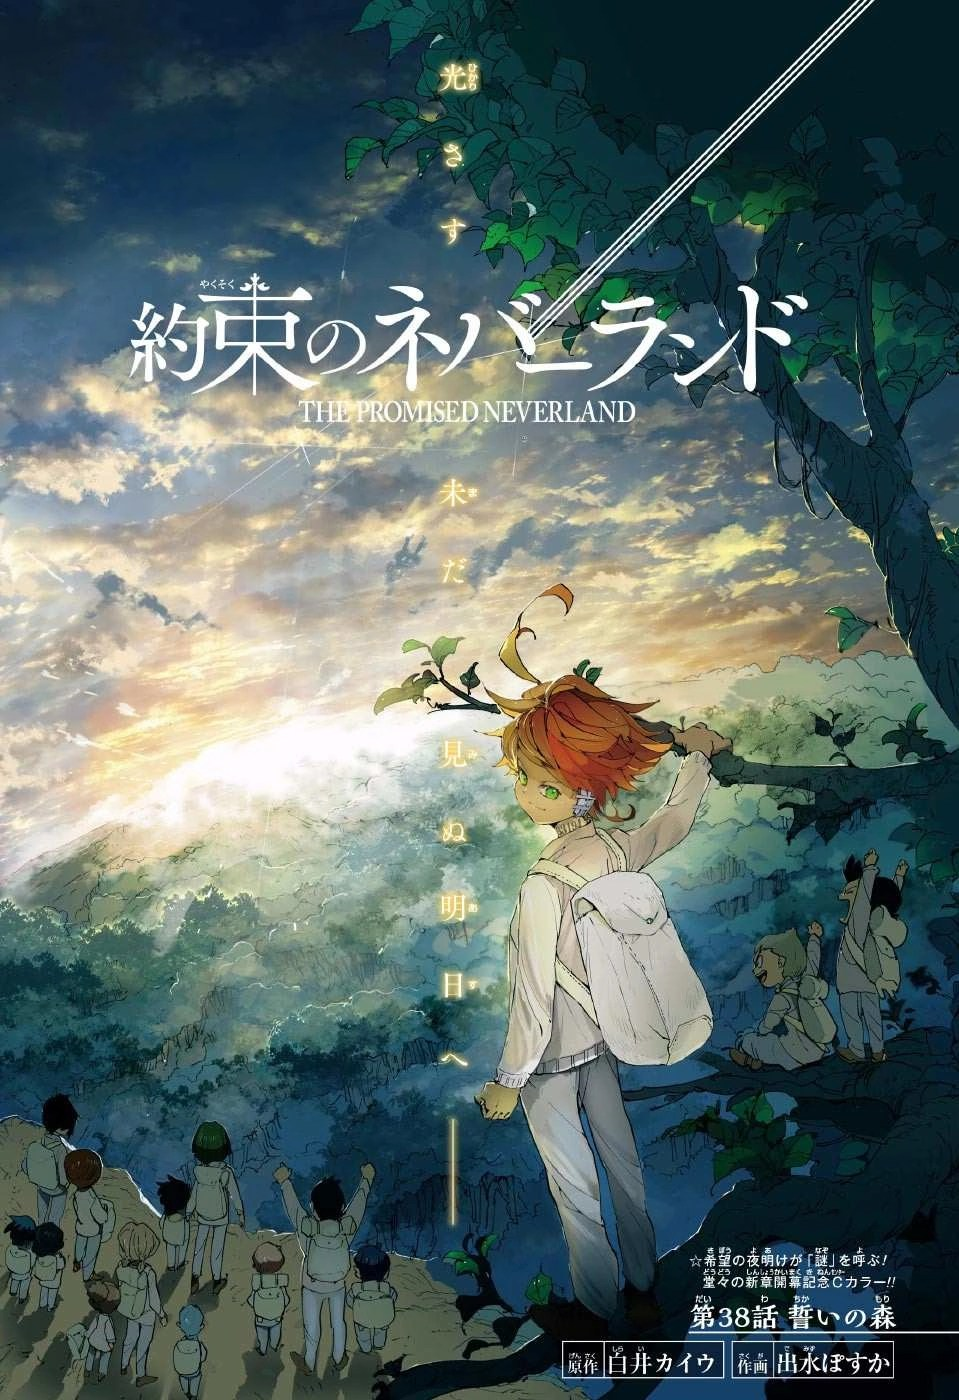 The Promised Neverland Chapitre 2 : promised, neverland, chapitre, Promised, Forest, Neverland, Fandom